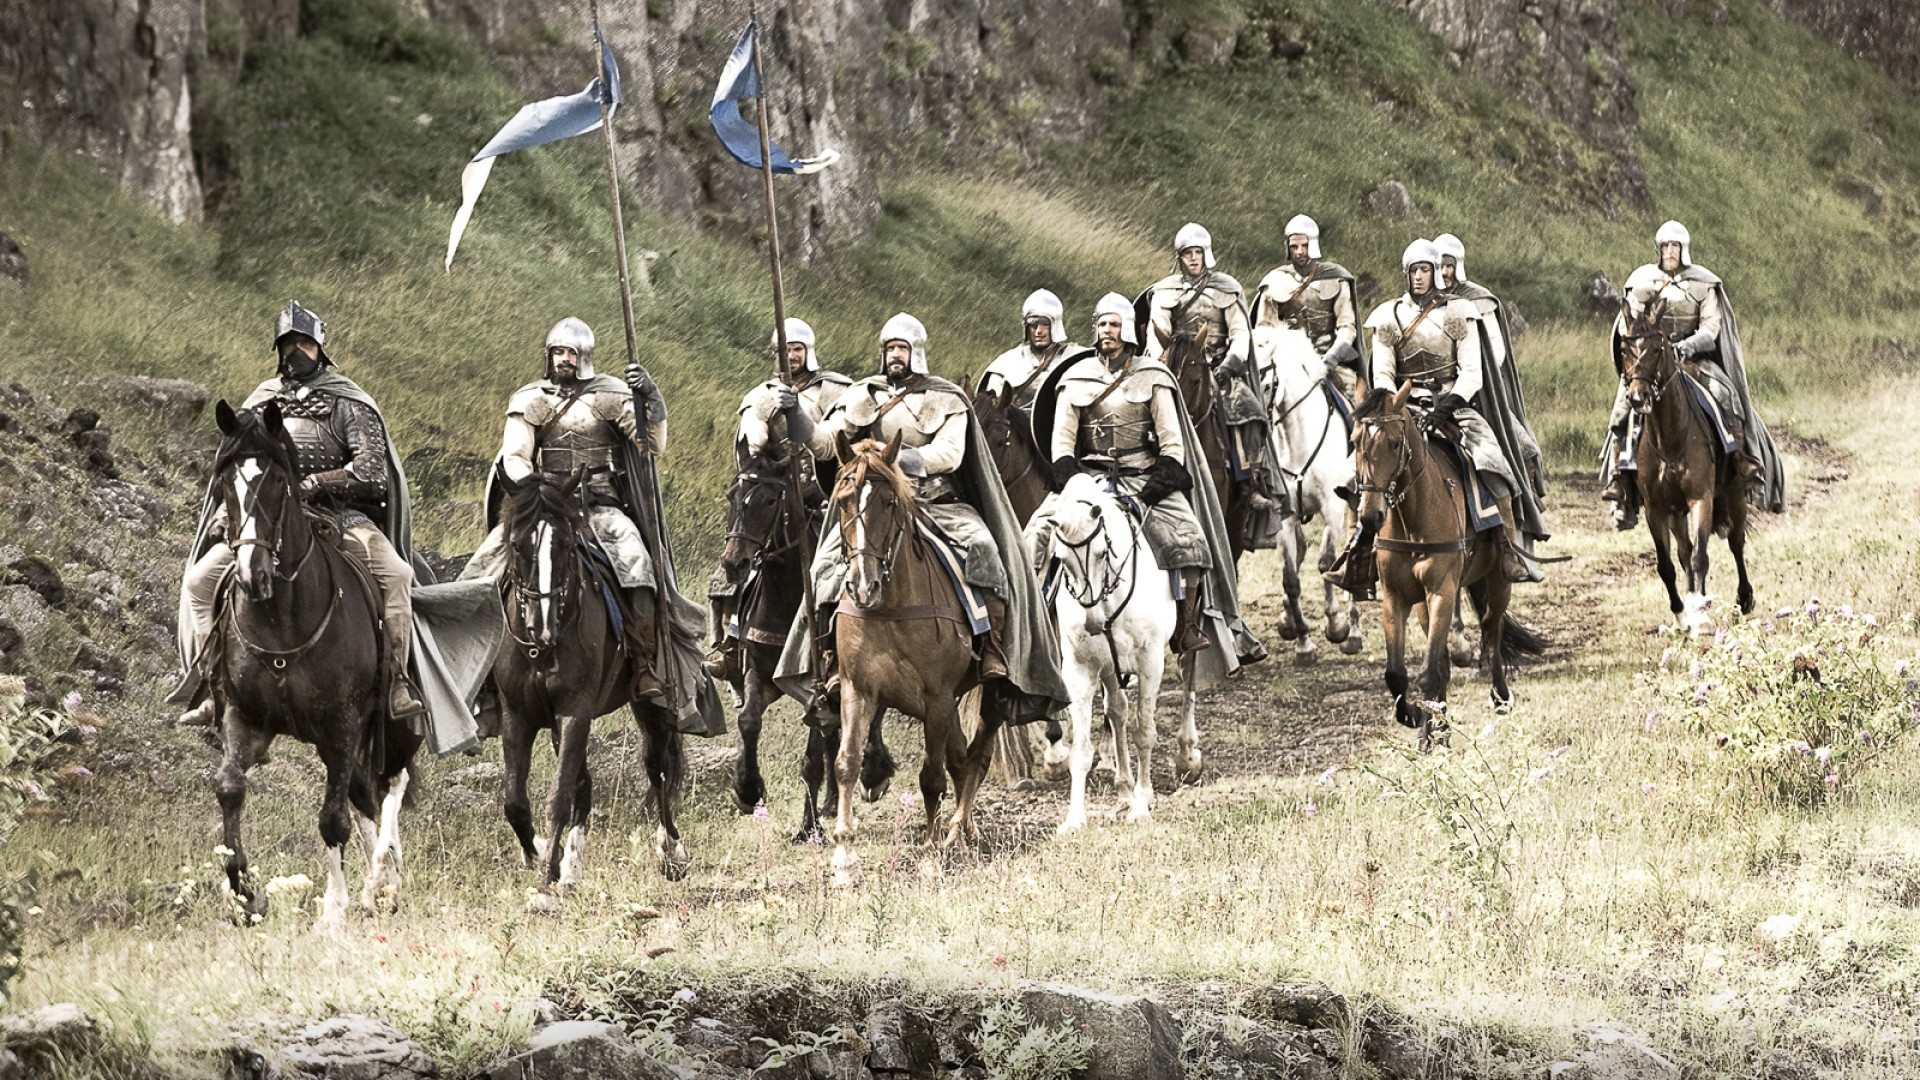 1920x1080 Preview wallpaper game of thrones, warriors, squad, horses, knights